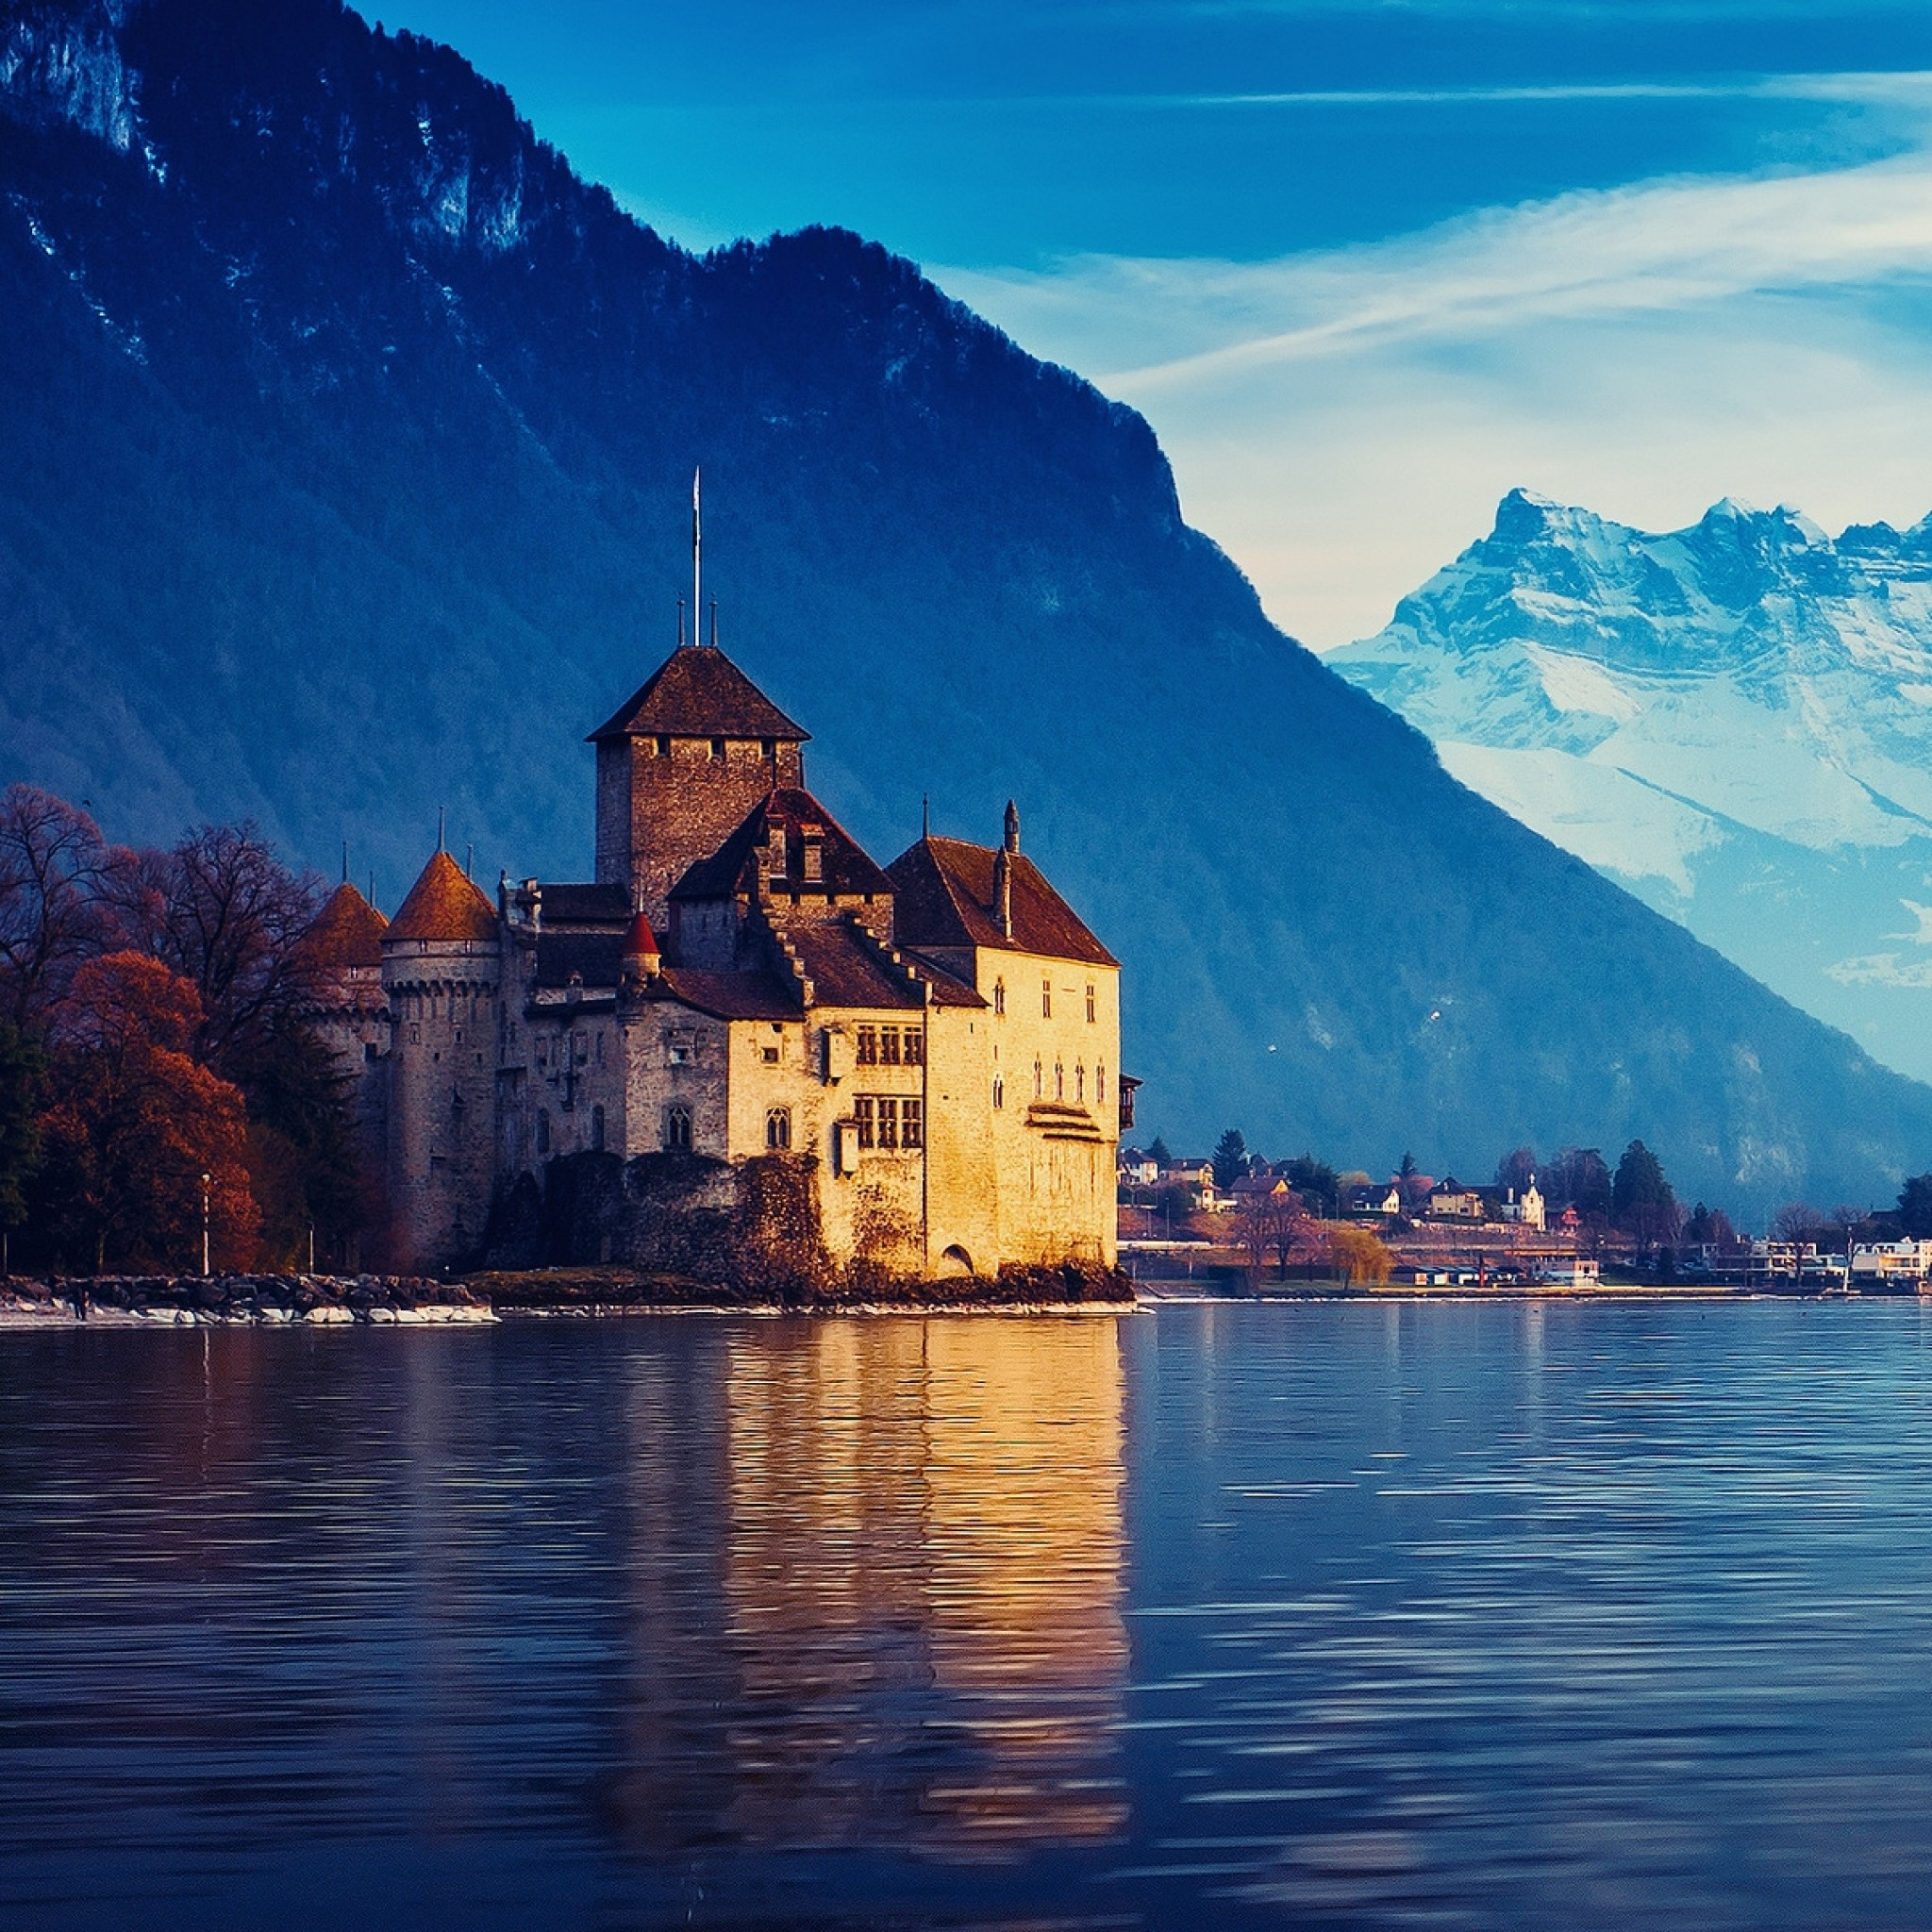 Wallpaper switzerland, lake geneva, city, mountains, snow